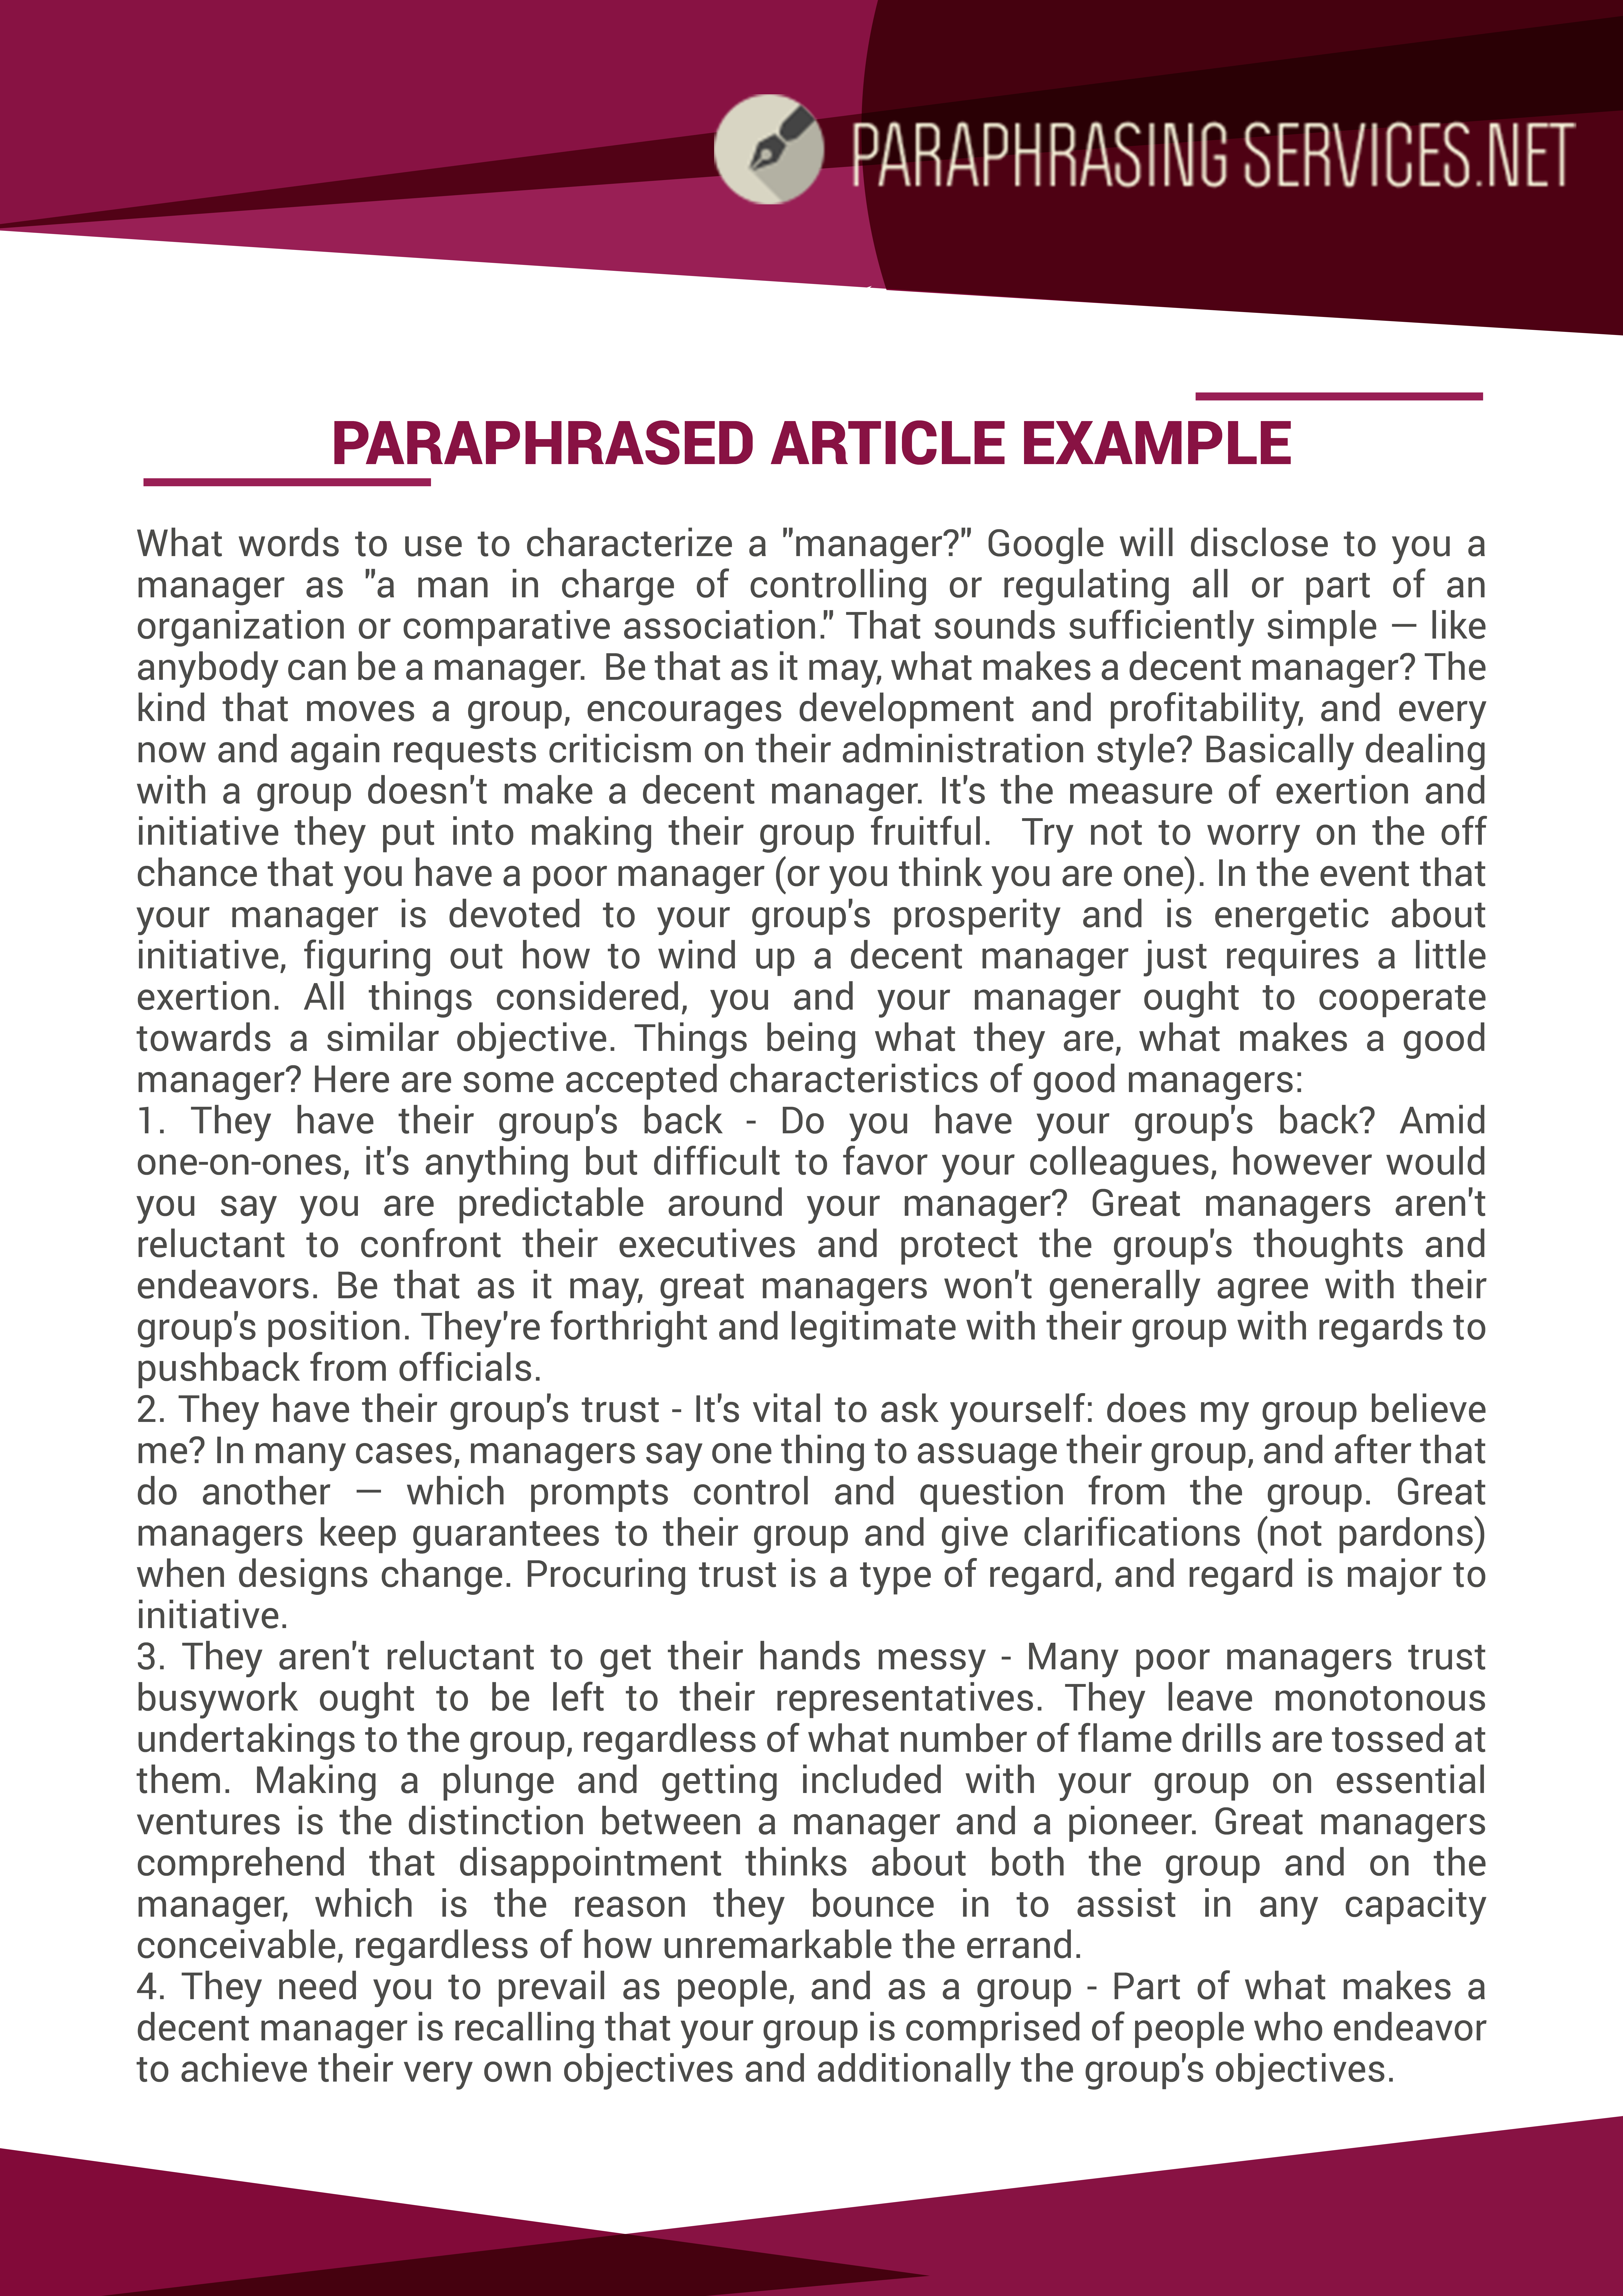 Learn How To Paraphrase An Article Example After By Clicking On Thi Link Http Www Paraphrasingservice Net Para Plagiarism Online Service